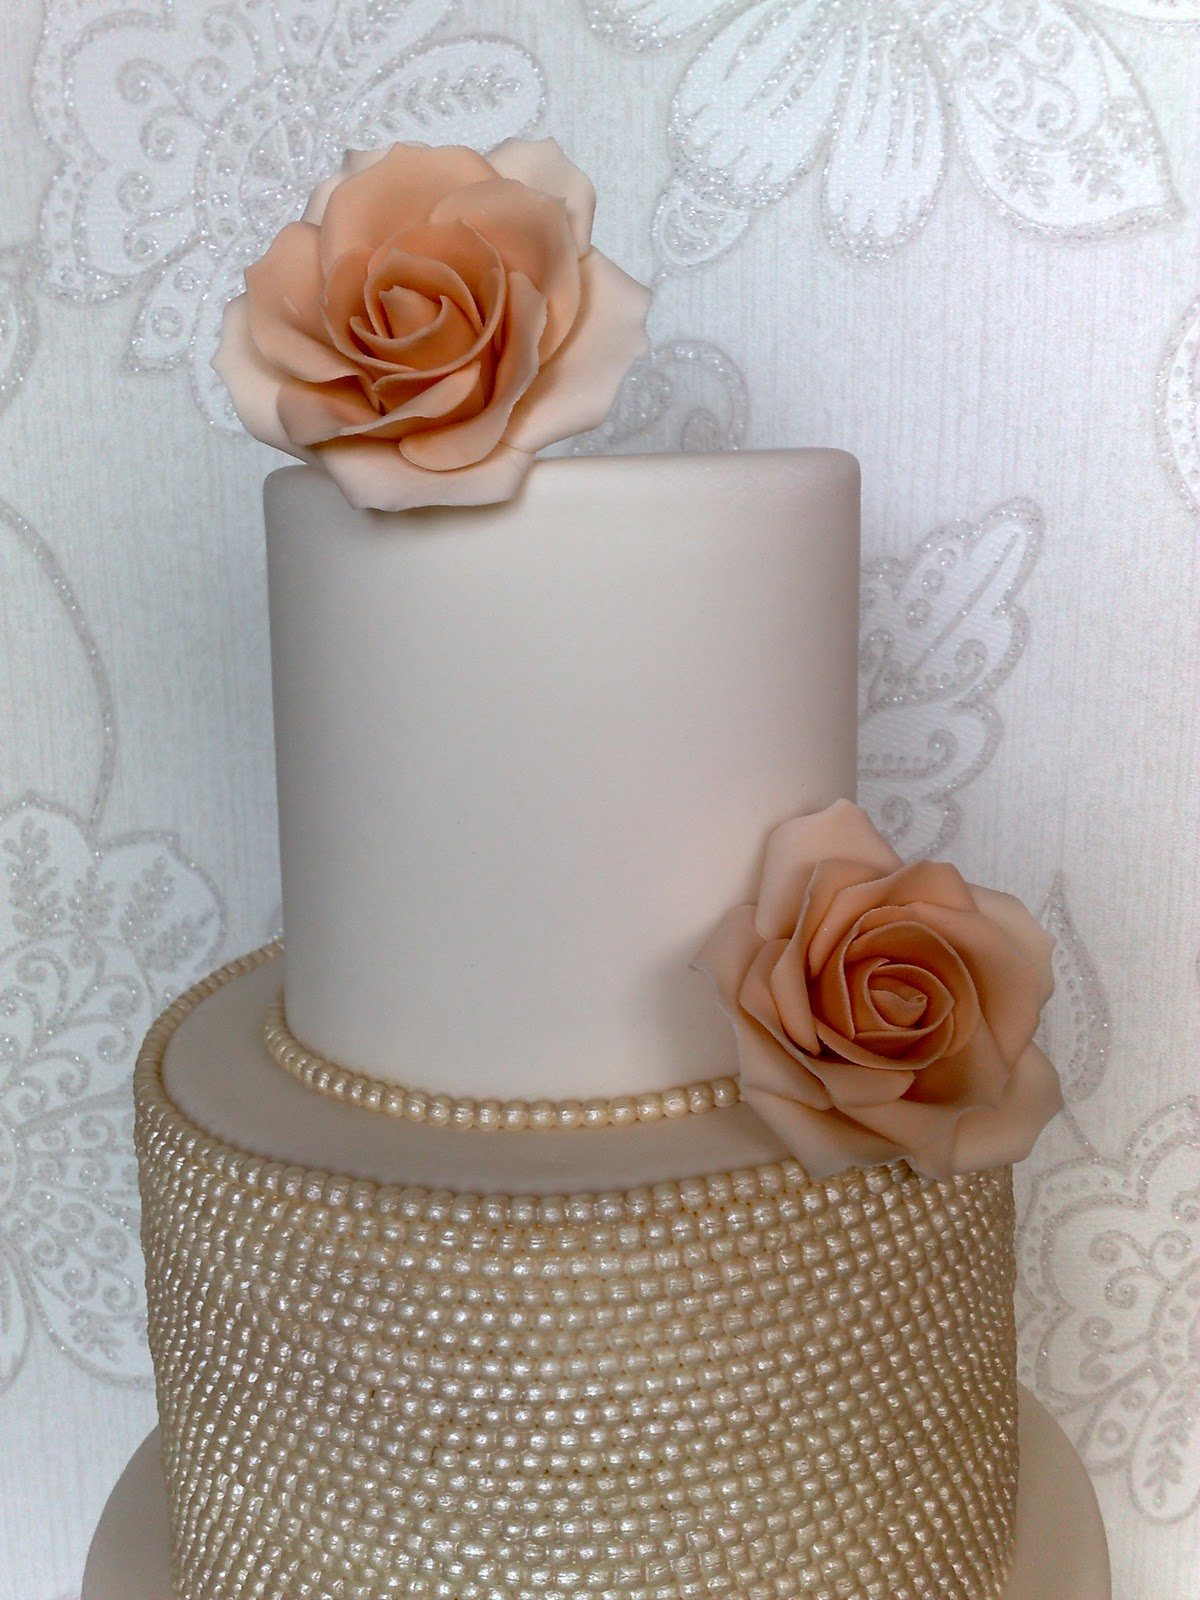 Small Things Iced Vintage Pearl & Rose Wedding Cake